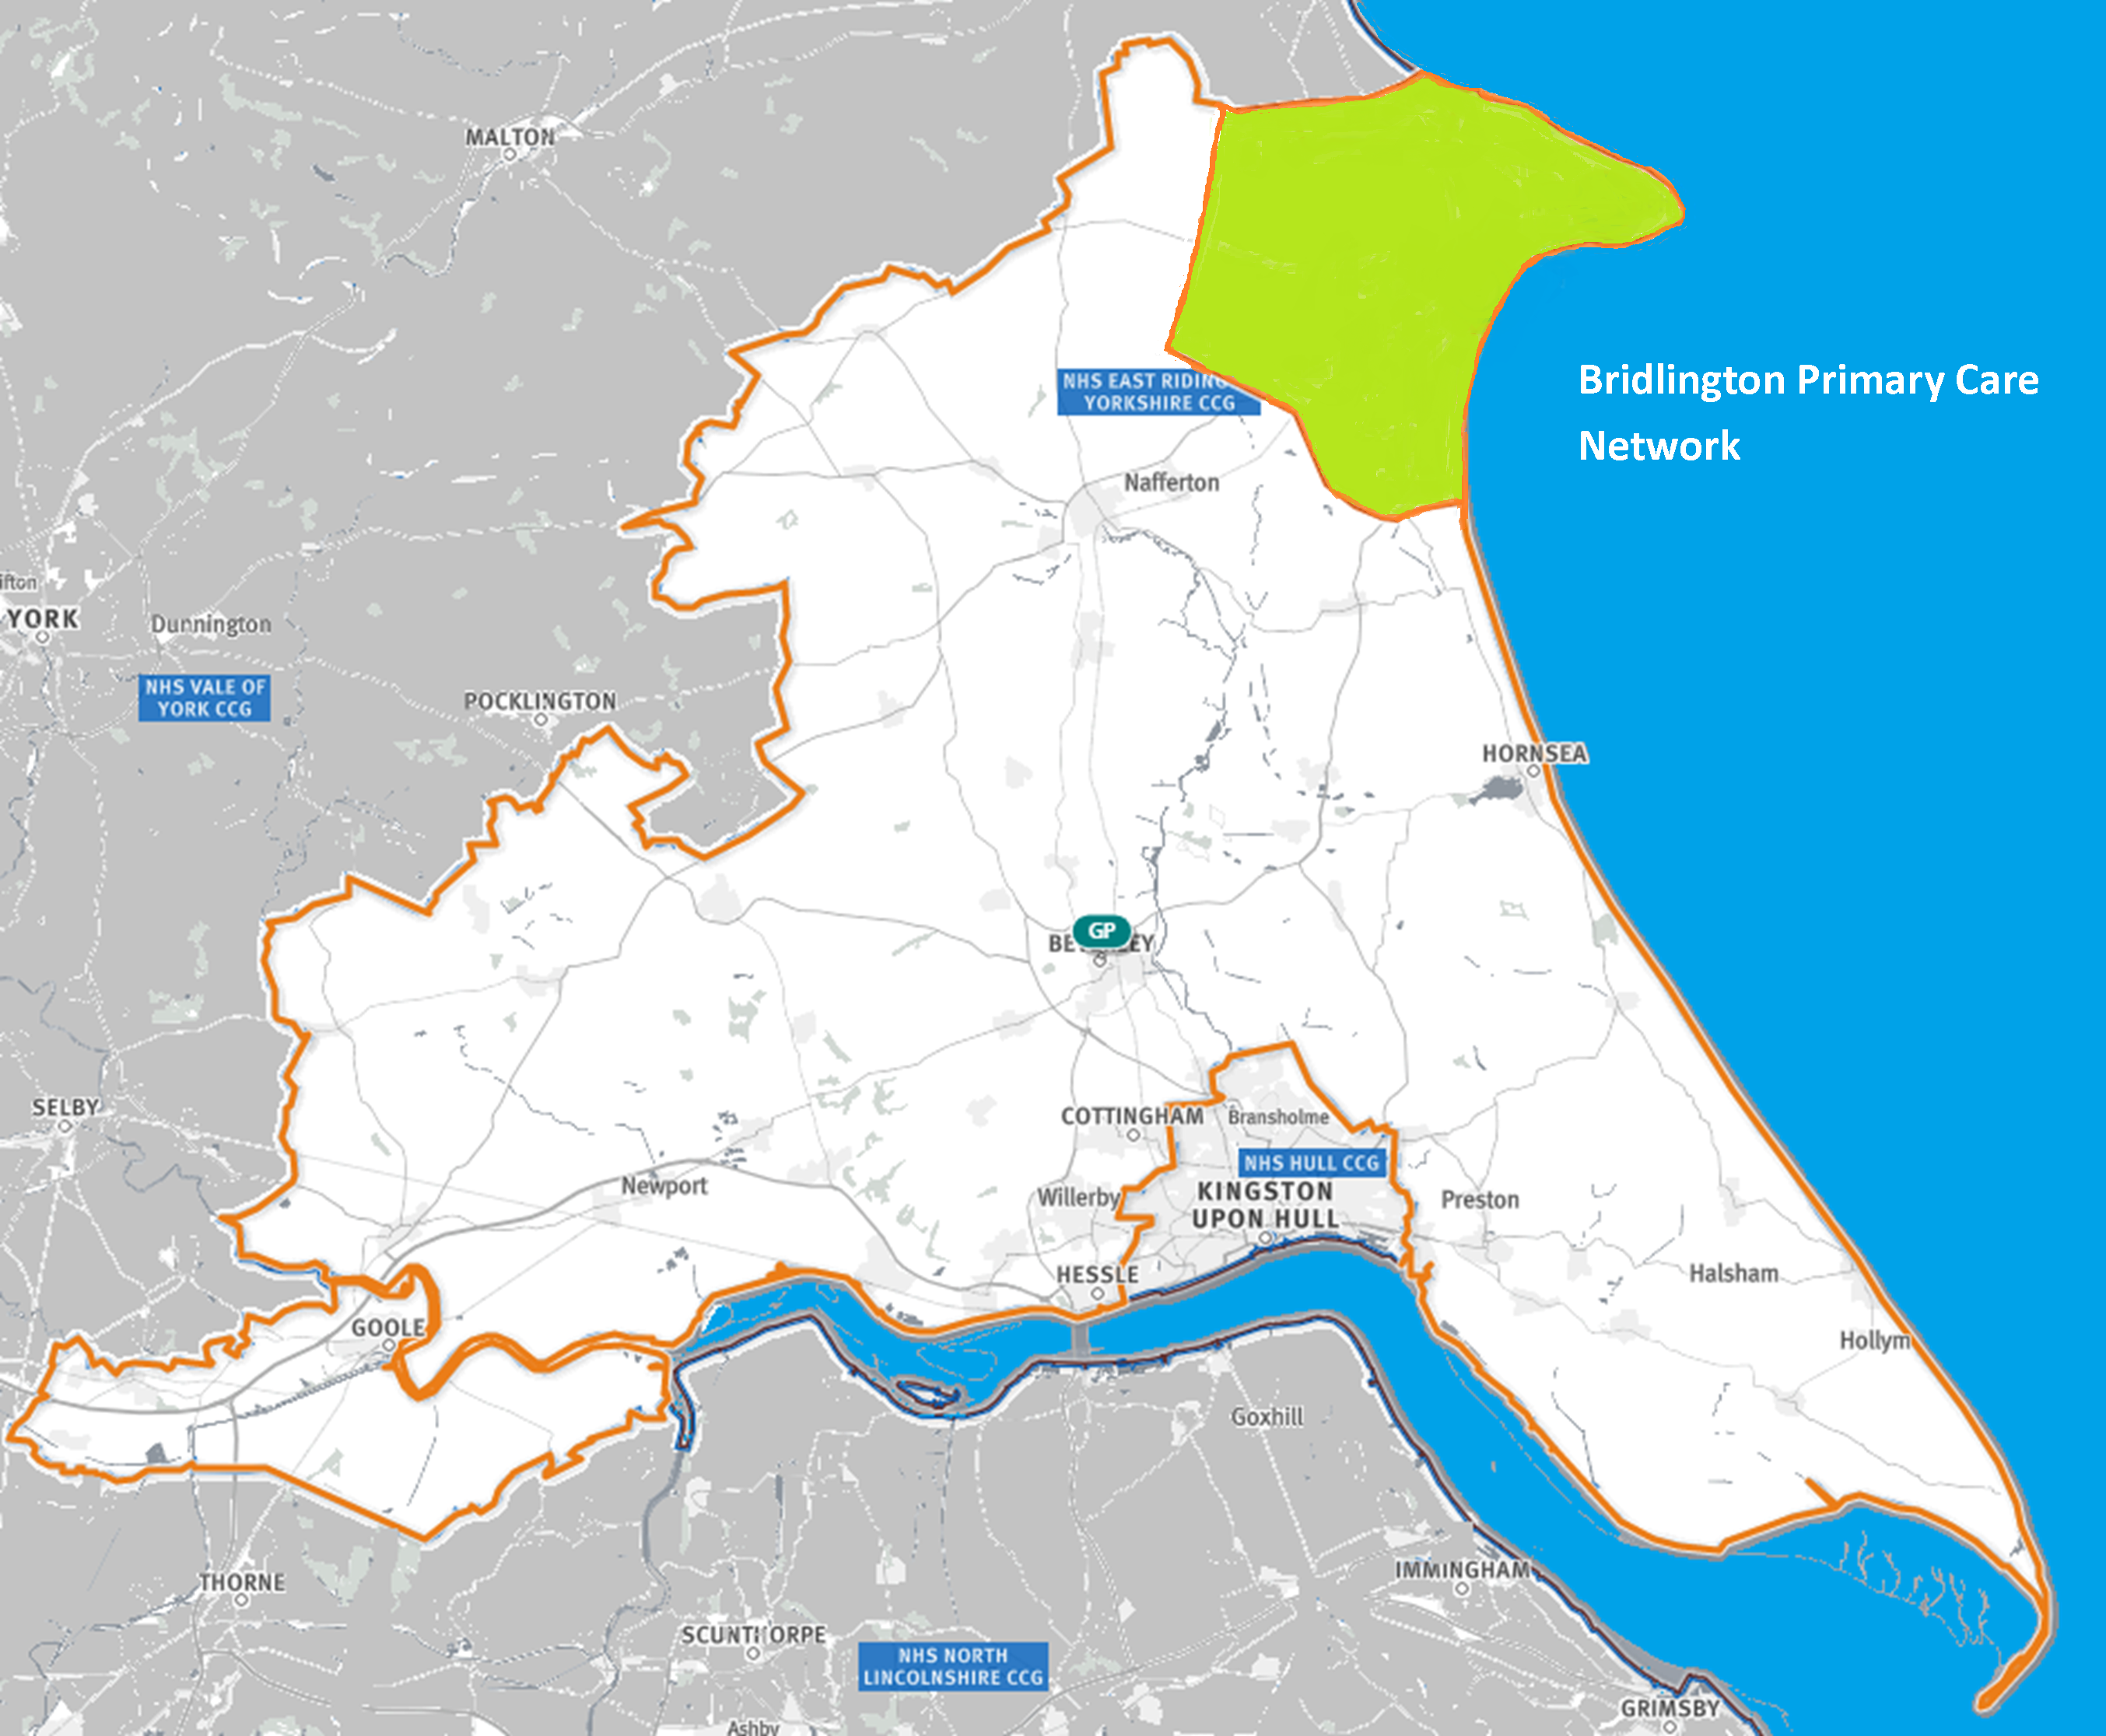 Map of the area covered by the Bridlington PCN